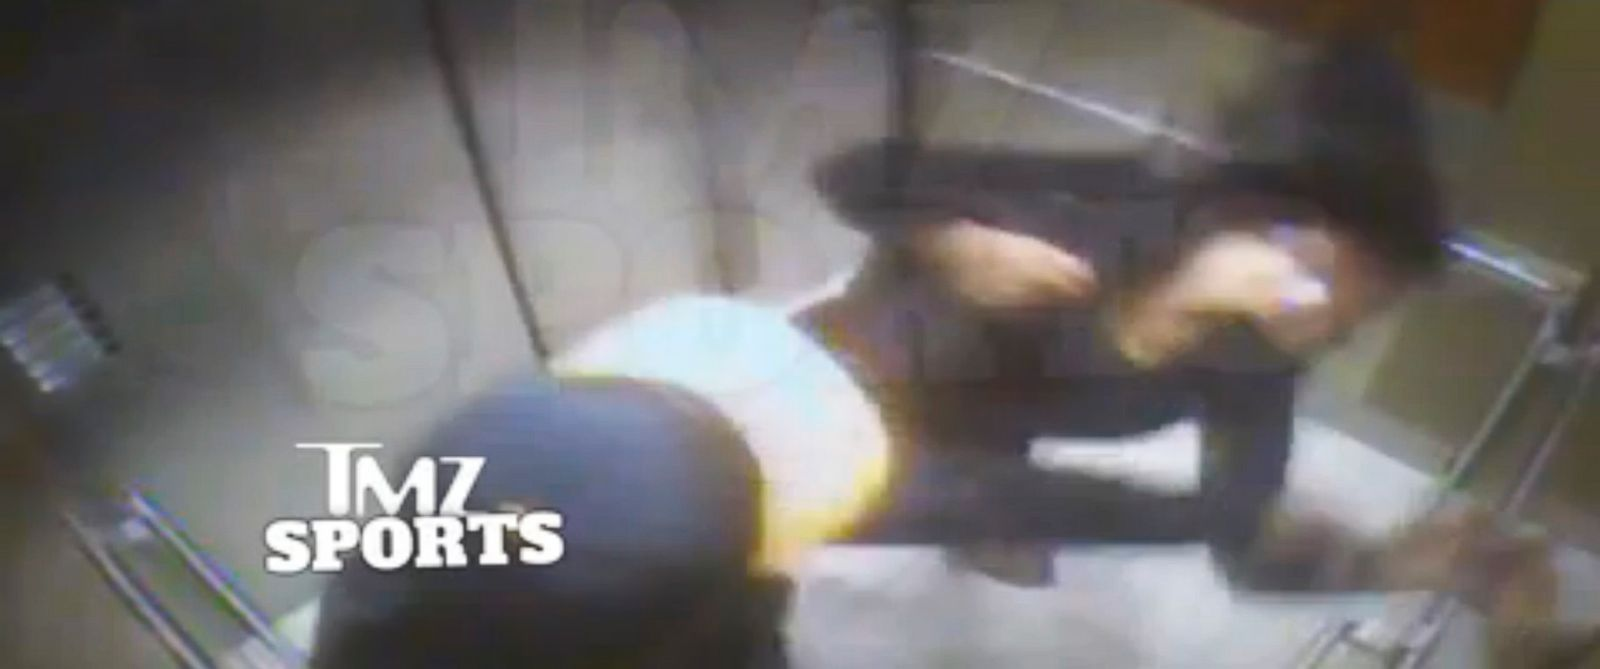 PHOTO: A video from TMZ allegedly shows Ray Rice punching his now-wife Janay Palmer on Feb. 15, 2014.